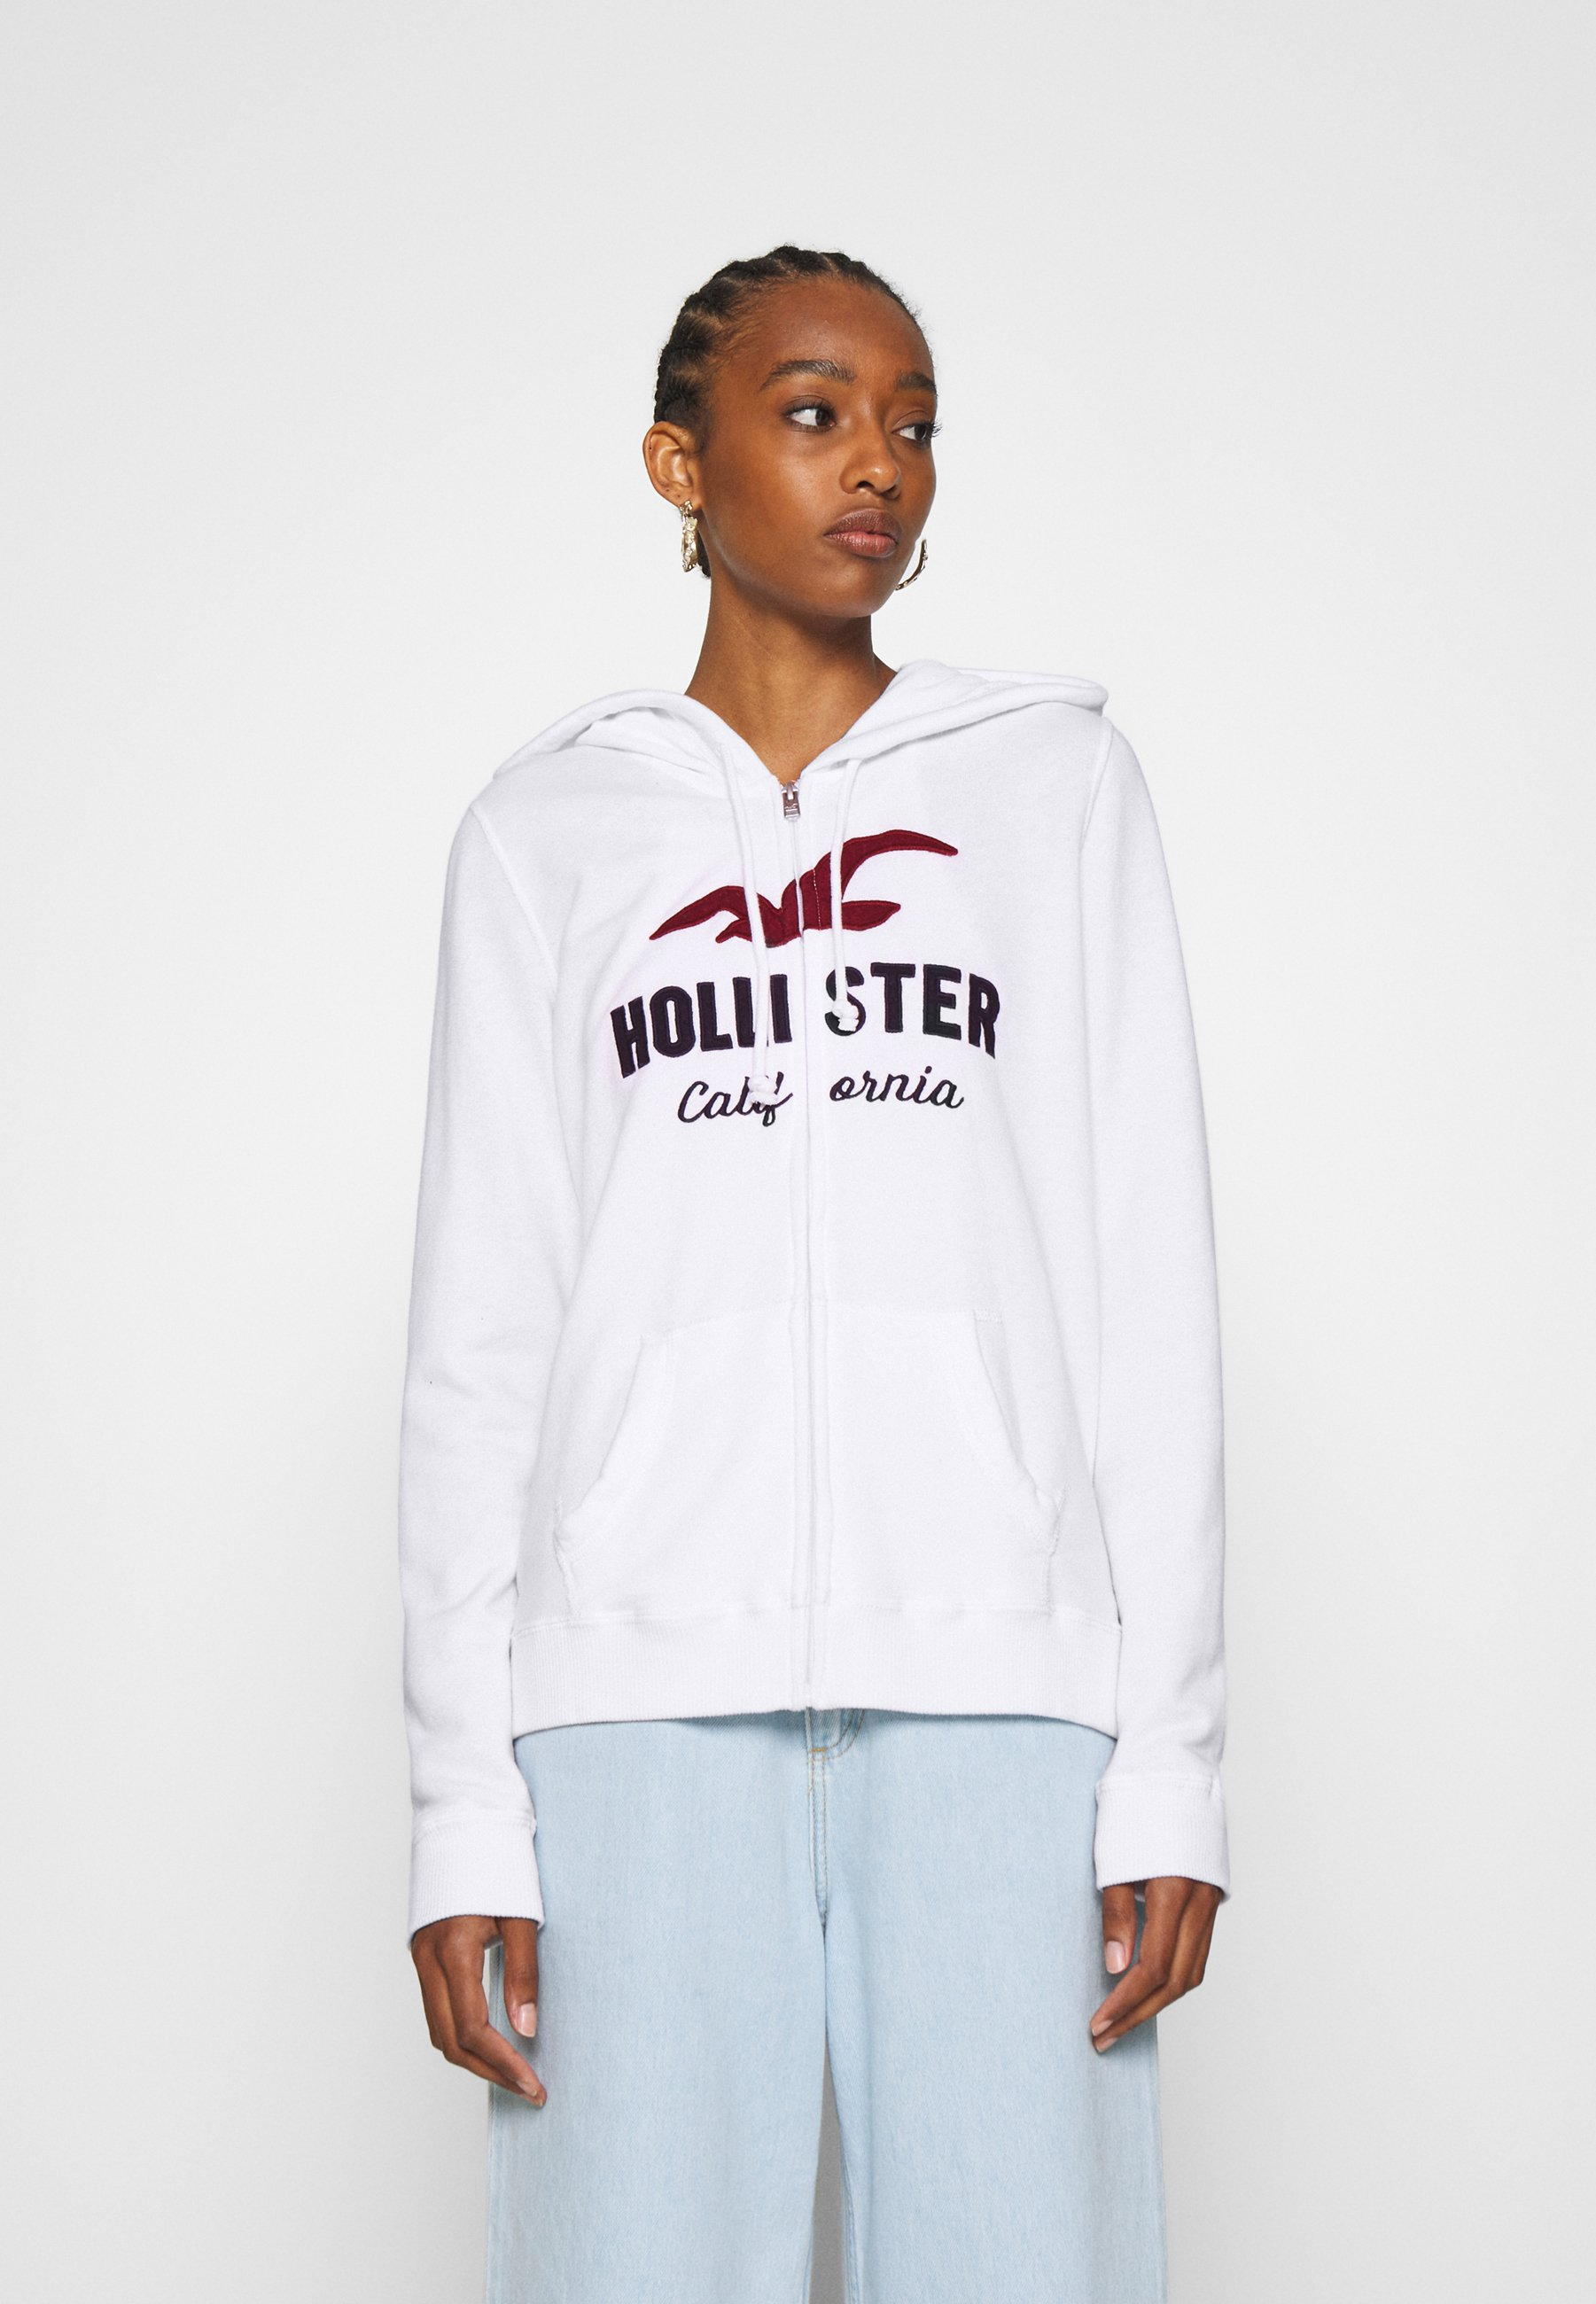 2020 New New Style Women's Clothing Hollister Co. TERRY TECH CORE Zip-up hoodie white kX3eR49NP 8VErNykkG